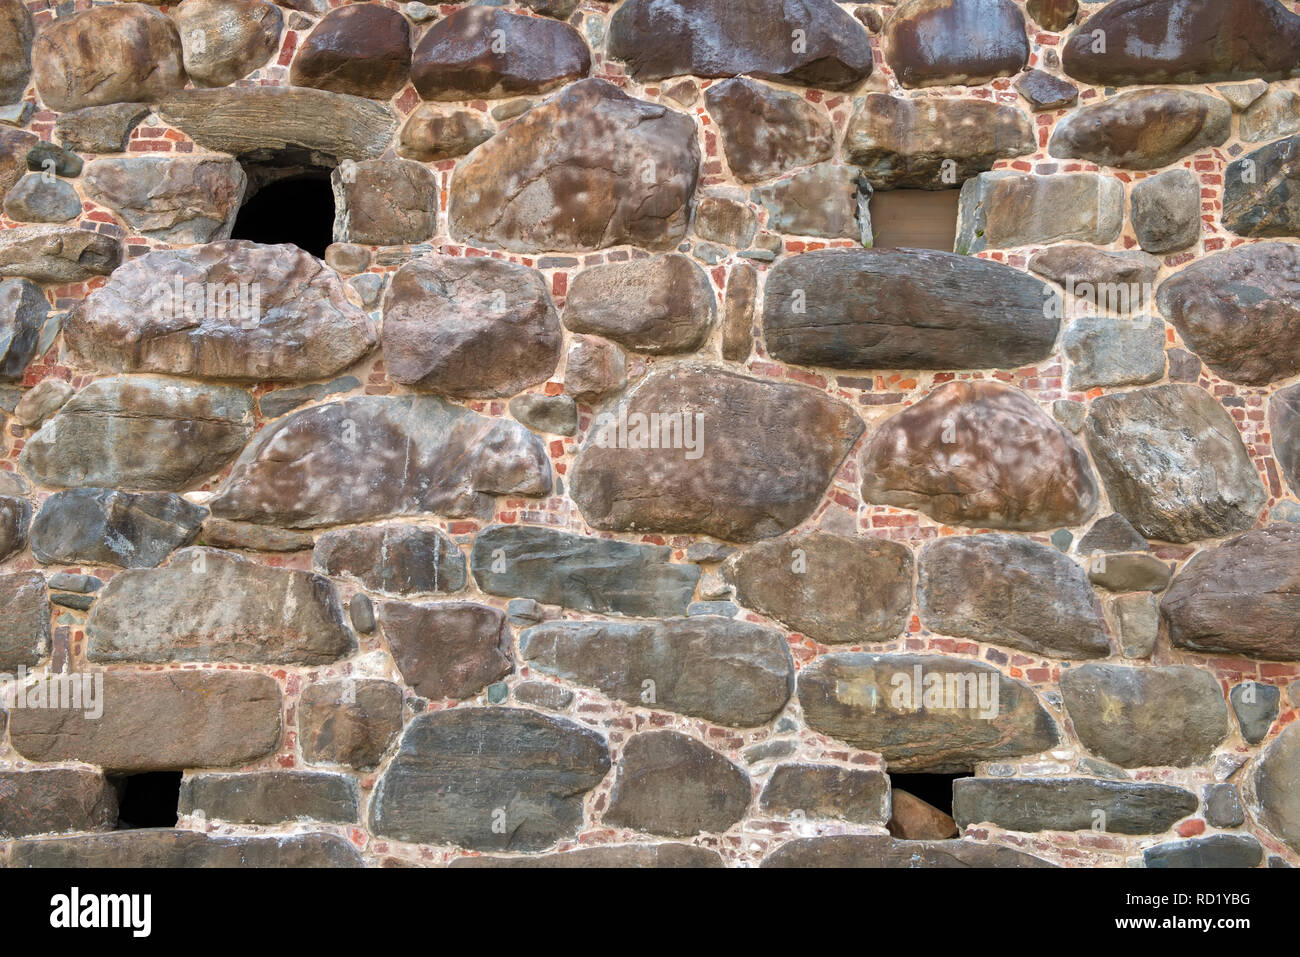 Part of the wall of the Spaso-Preobrazhensky Solovetsky Monastery. Solovetsky archipelago, White Sea, Russia Stock Photo